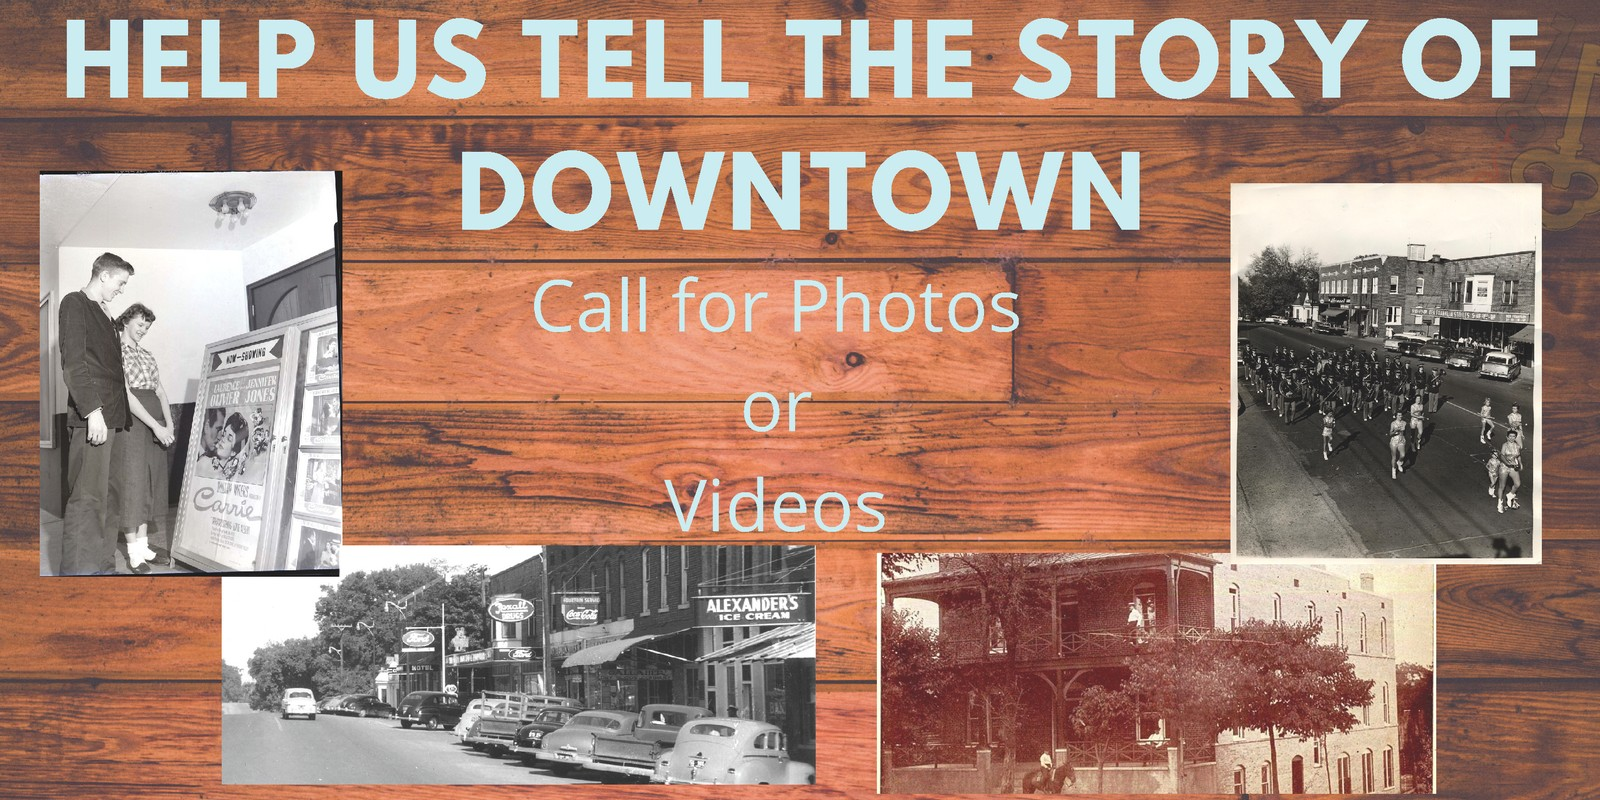 Help Us Tell the Story of Downtown